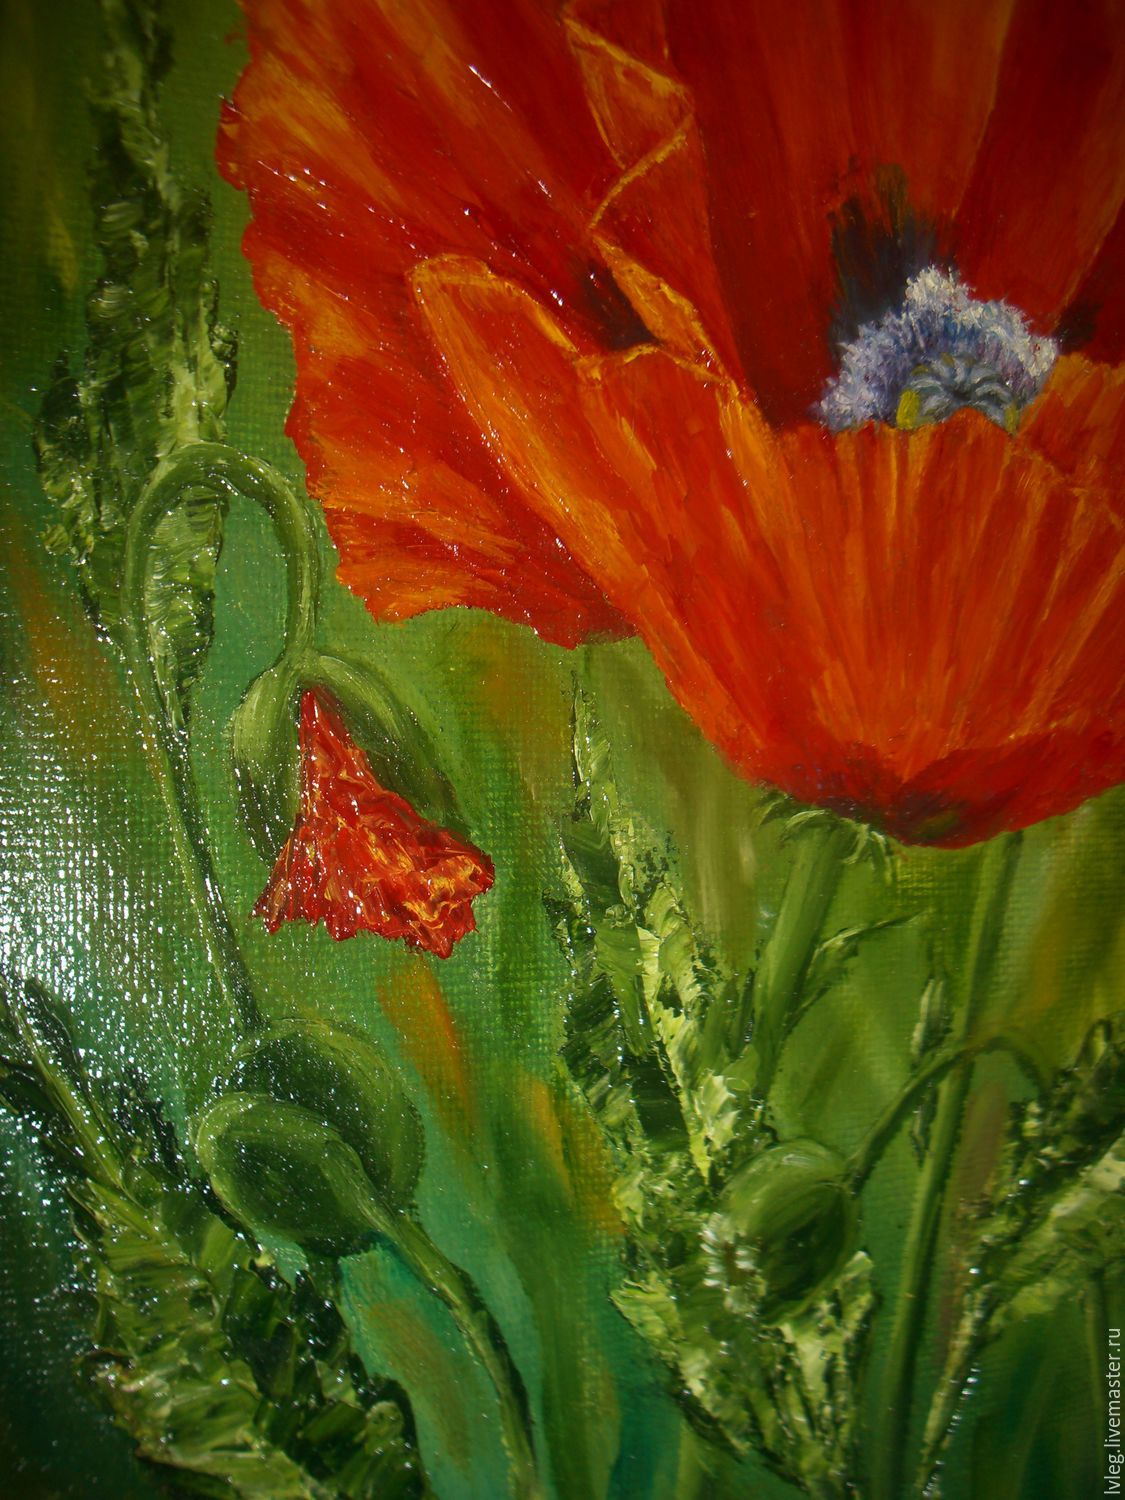 Oil painting bright poppies canvas poppies flowers shop online order oil painting bright poppies canvas poppies flowers mightylinksfo